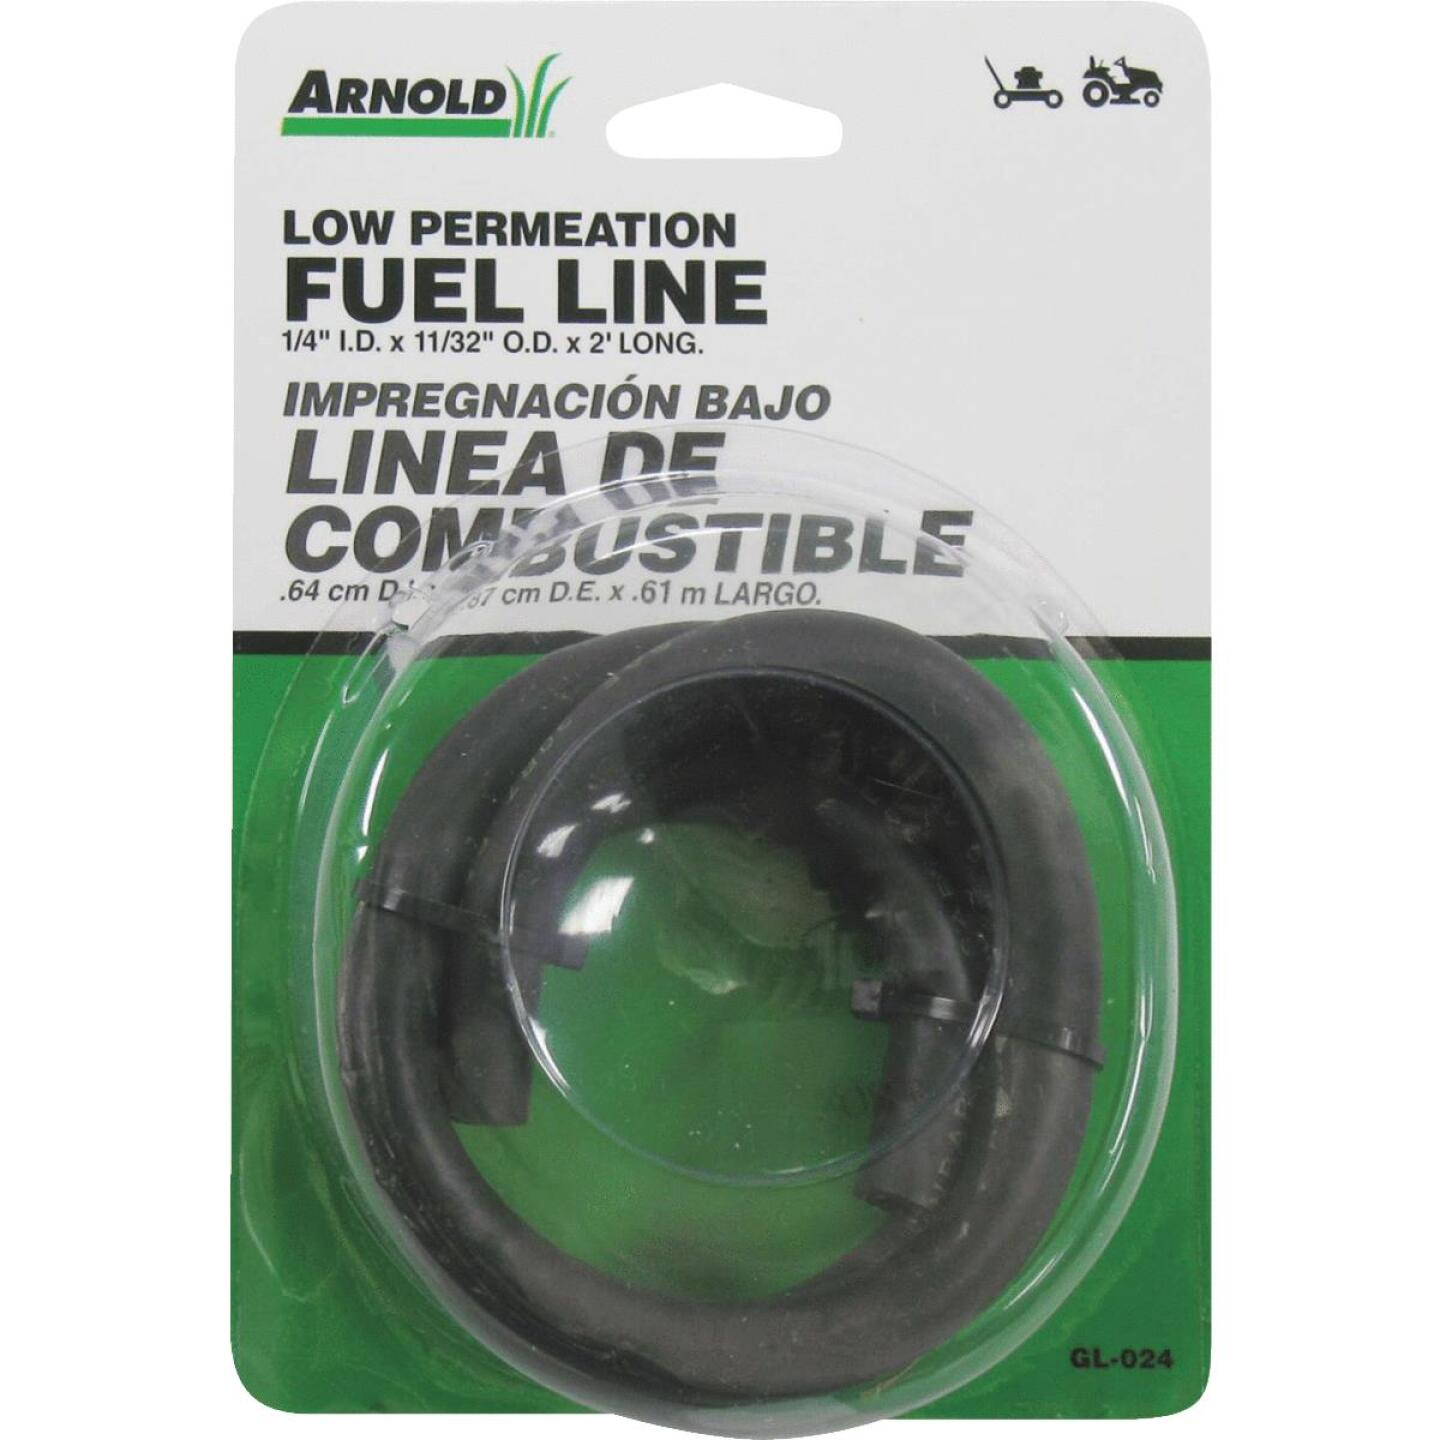 Arnold 2 Ft. Fuel Line Image 1